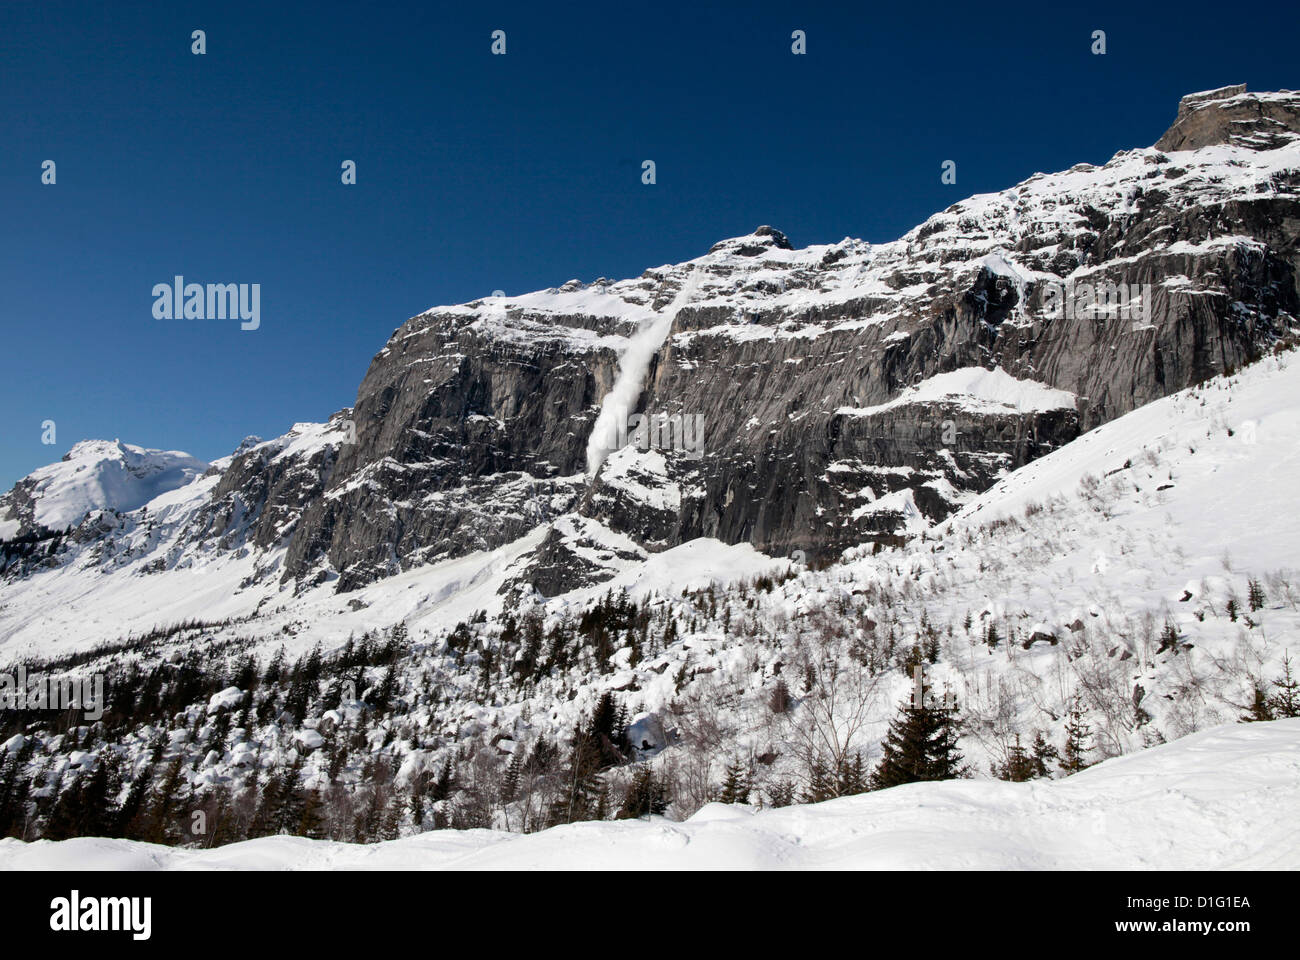 Snow-covered rocks in the French Alps, Plateau d'Assy, Haute-Savoie, France, Europe - Stock Image